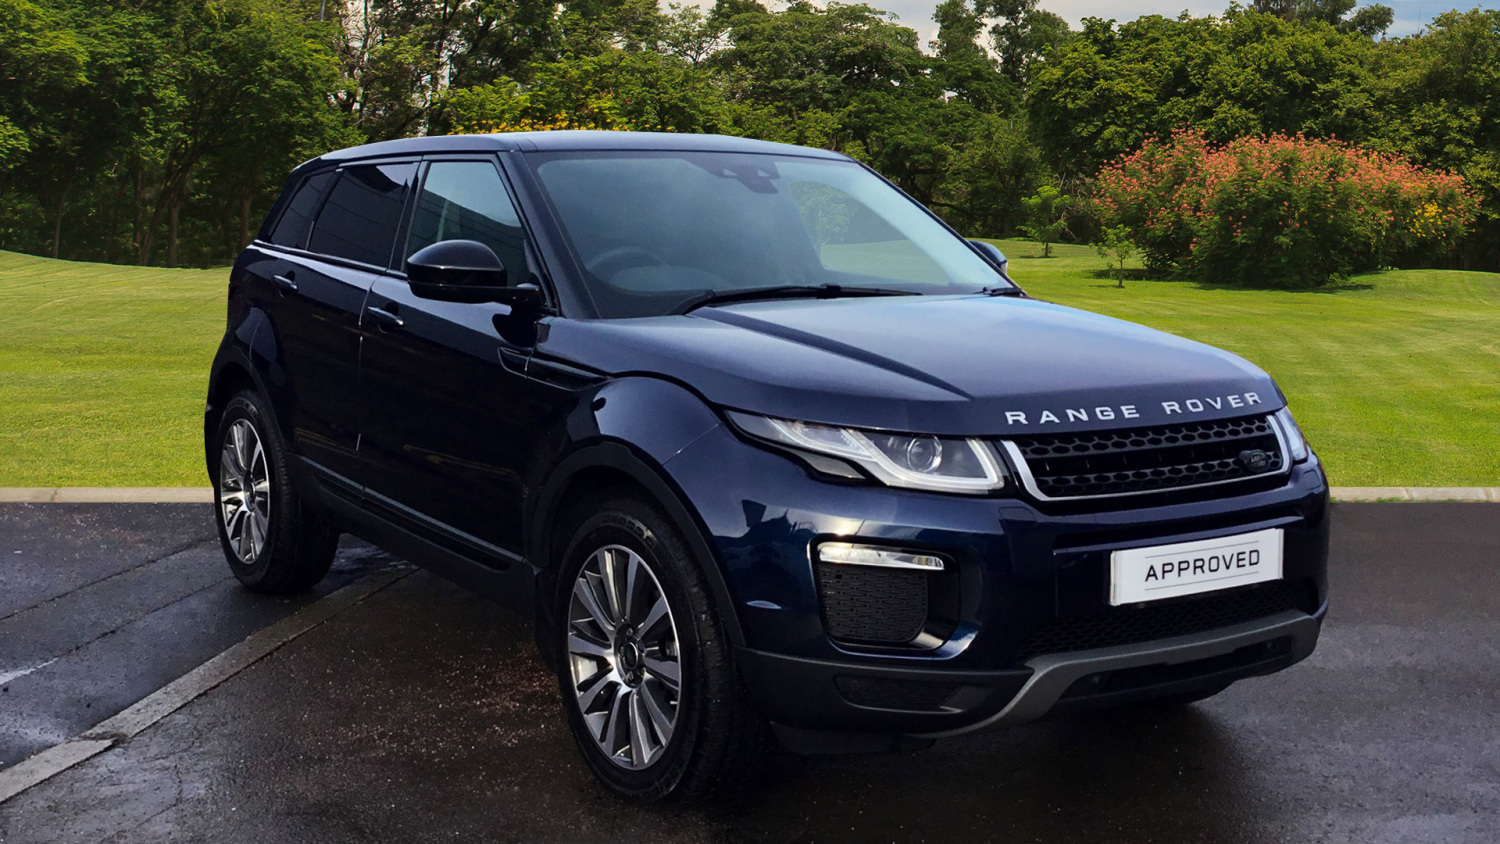 used land rover range rover evoque 2 0 ed4 se tech 5dr 2wd diesel hatchback for sale vertu toyota. Black Bedroom Furniture Sets. Home Design Ideas